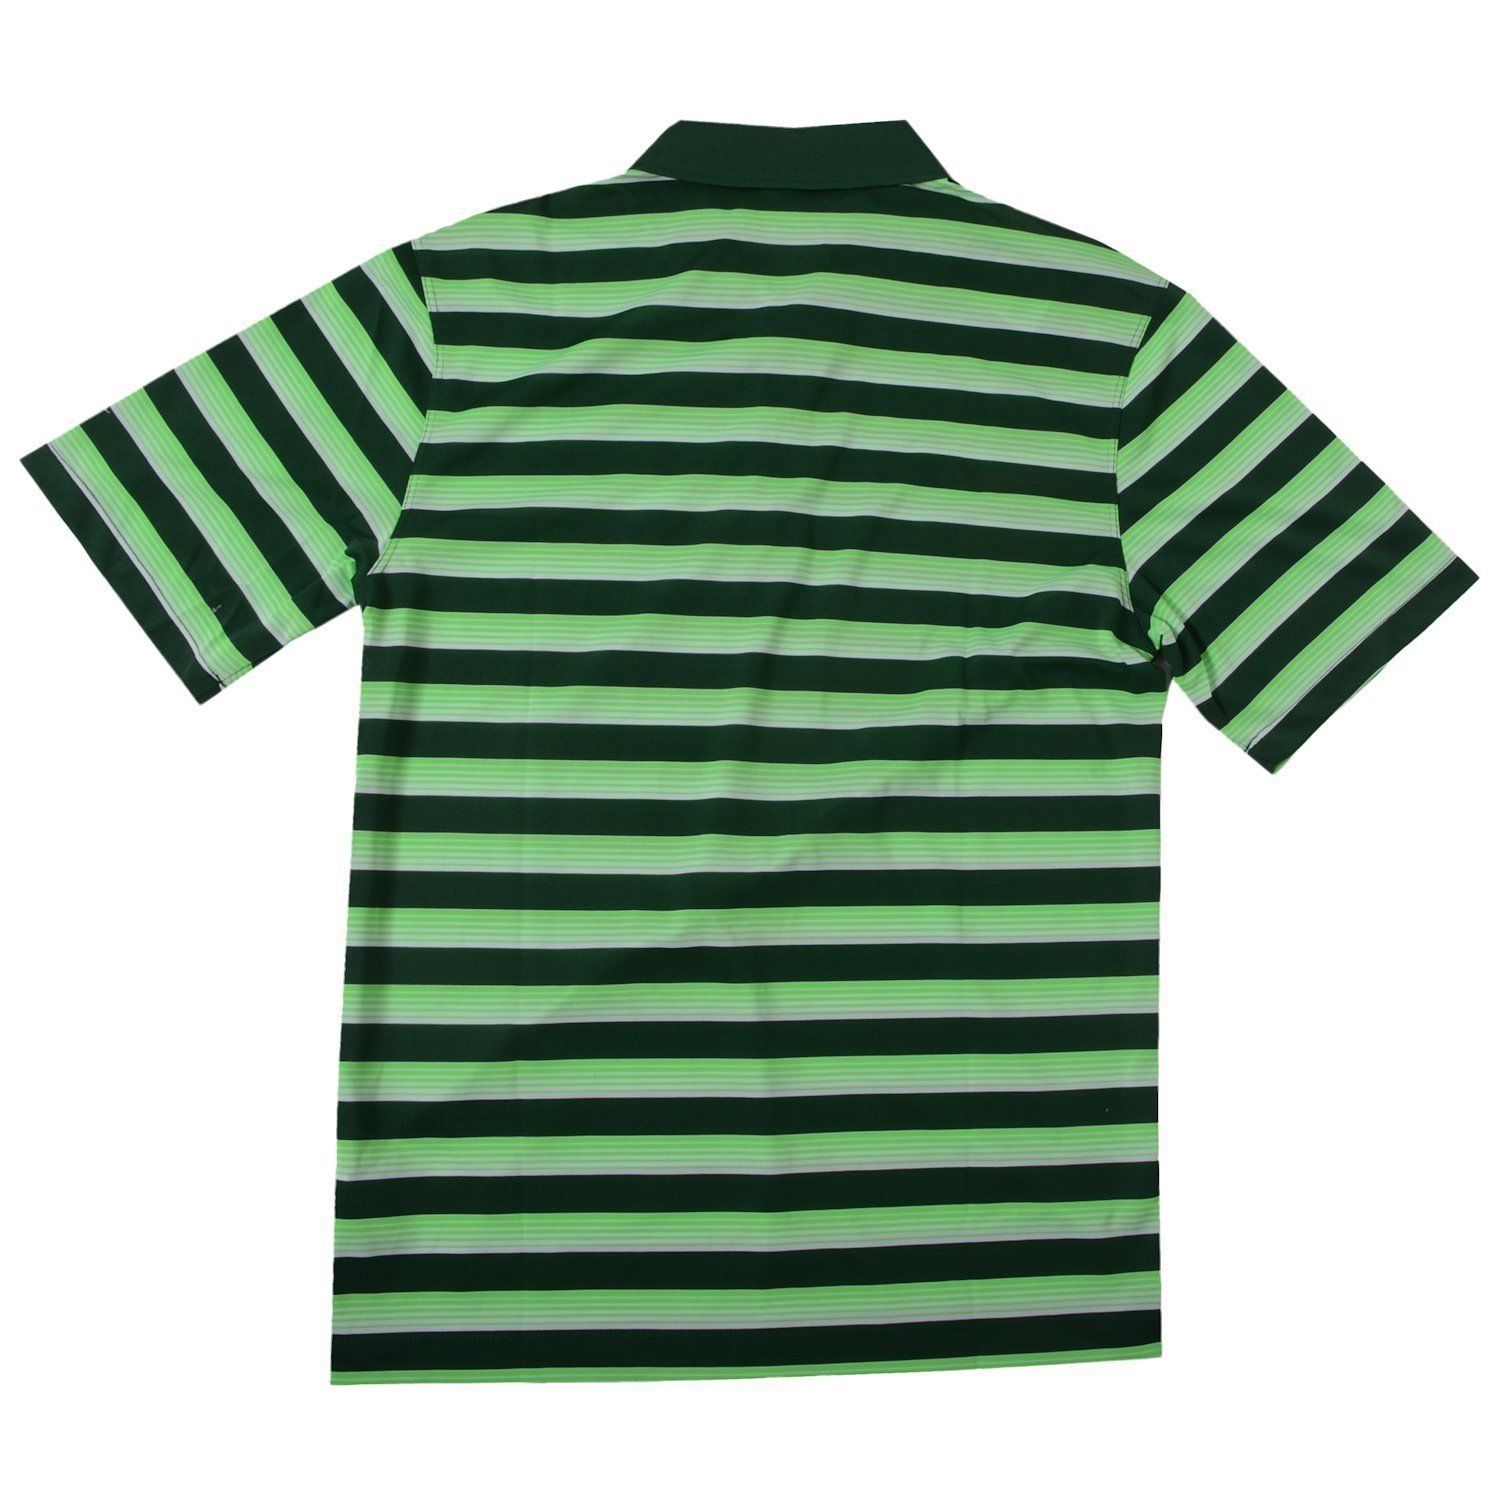 sale retailer c172d f8577 Nike Golf Men's Dri-FIT Icon Striped Green and 50 similar items